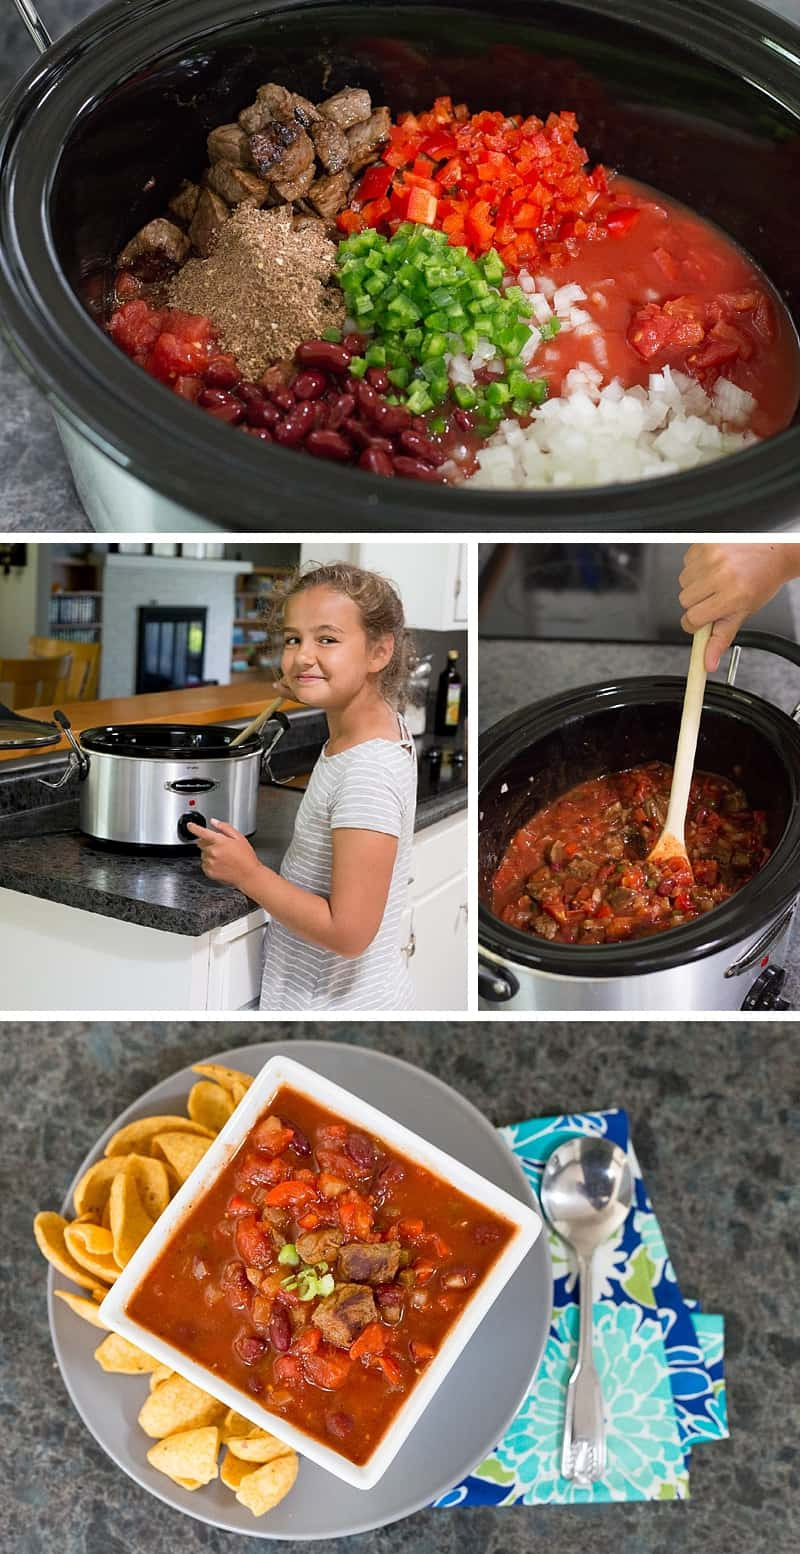 Best chili EVER! Kids will love helping you make this slow cooker recipe. It is so SIMPLE to make. You can use ground beef, steak or go vegetarian. It is perfect for a quiet evening at home or for hosting a family party. Plus you can freeze leftovers for an easy weeknight dinner on a school night. *This is one of my go-to dinners that the whole family loves. Perfect comfort food.